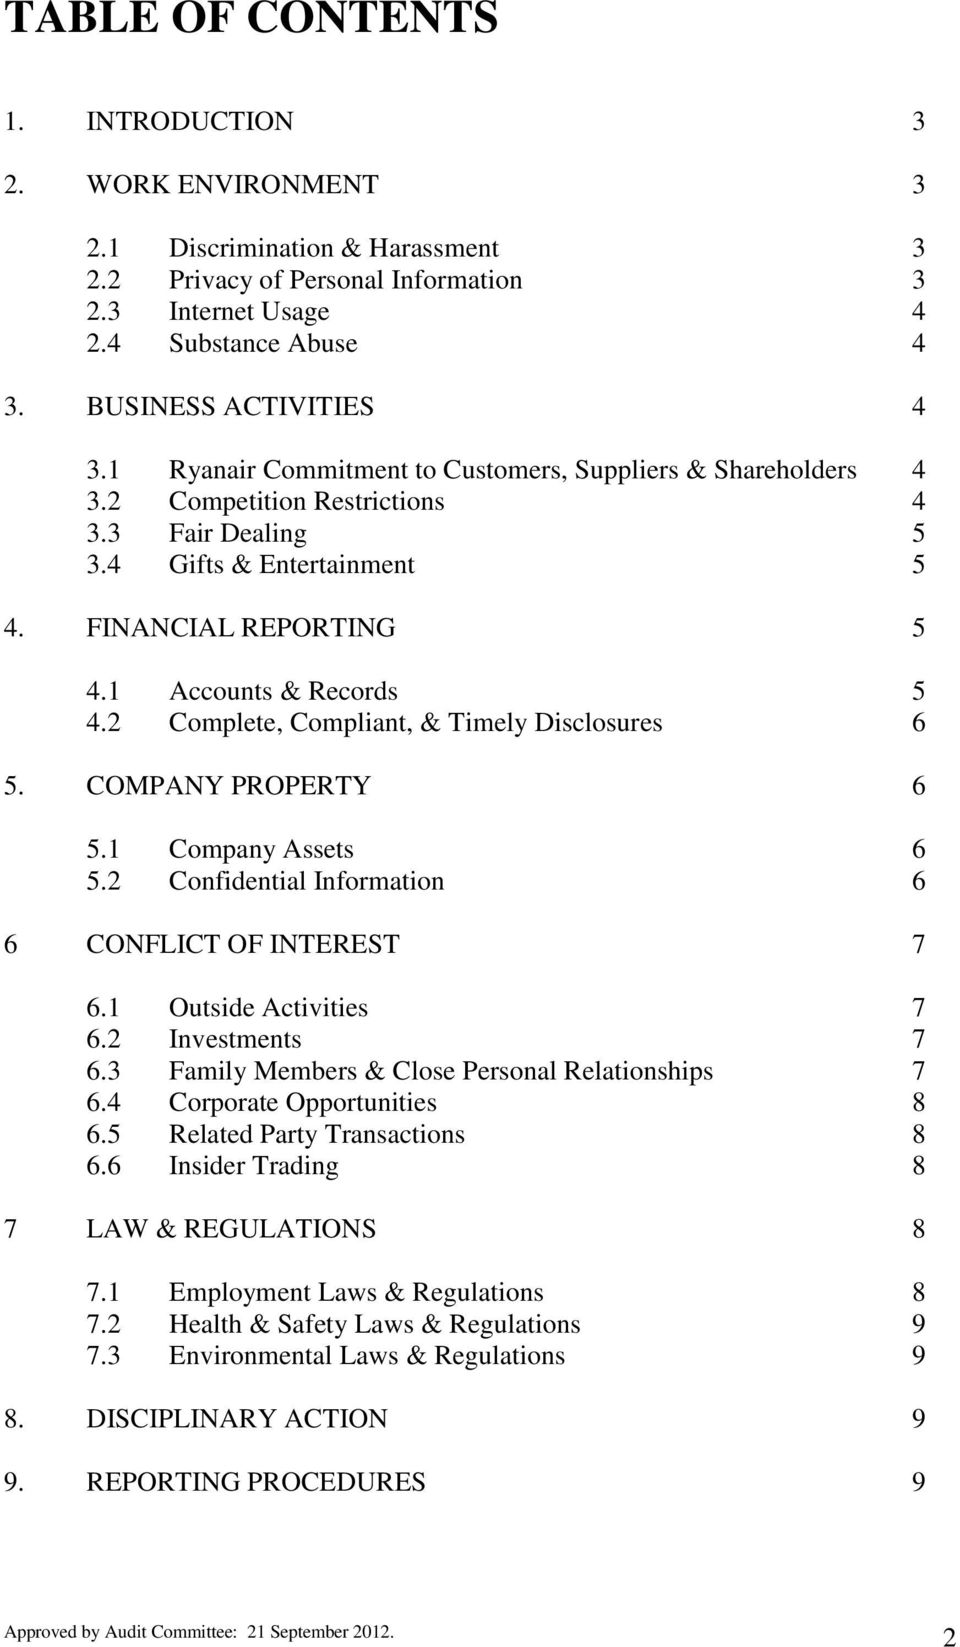 2 Complete, Compliant, & Timely Disclosures 6 5. COMPANY PROPERTY 6 5.1 Company Assets 6 5.2 Confidential Information 6 6 CONFLICT OF INTEREST 7 6.1 Outside Activities 7 6.2 Investments 7 6.